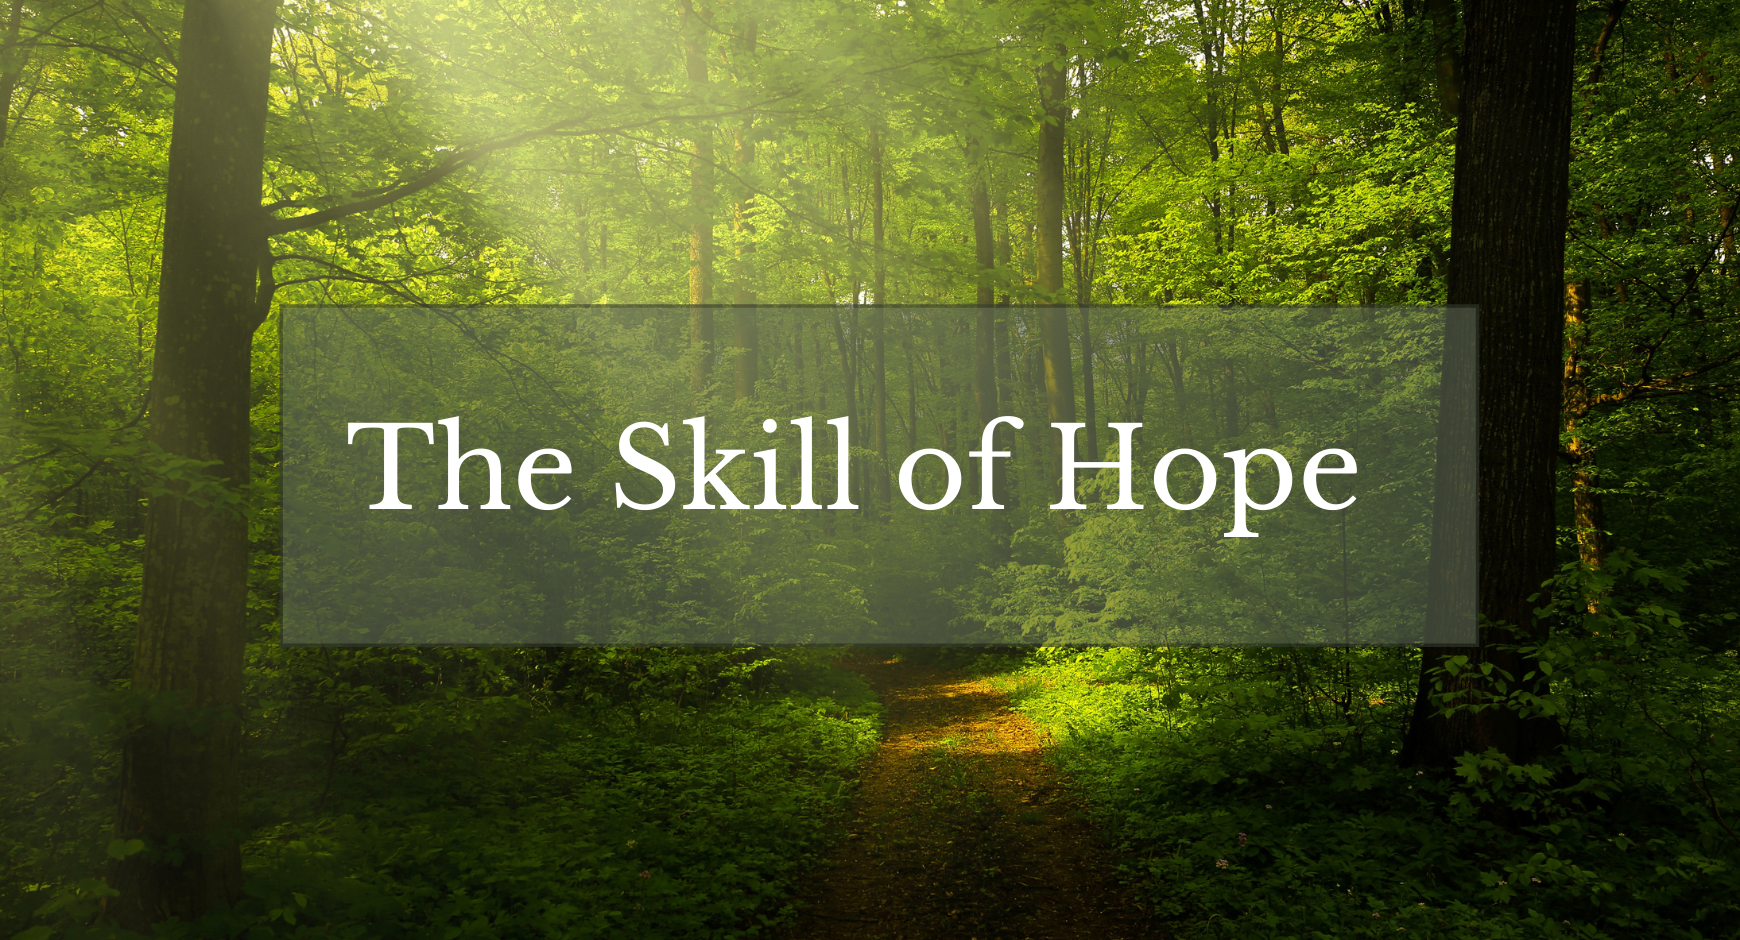 """A dark forest path with a beam of sunlight behind the words """"The Skill of Hope"""""""